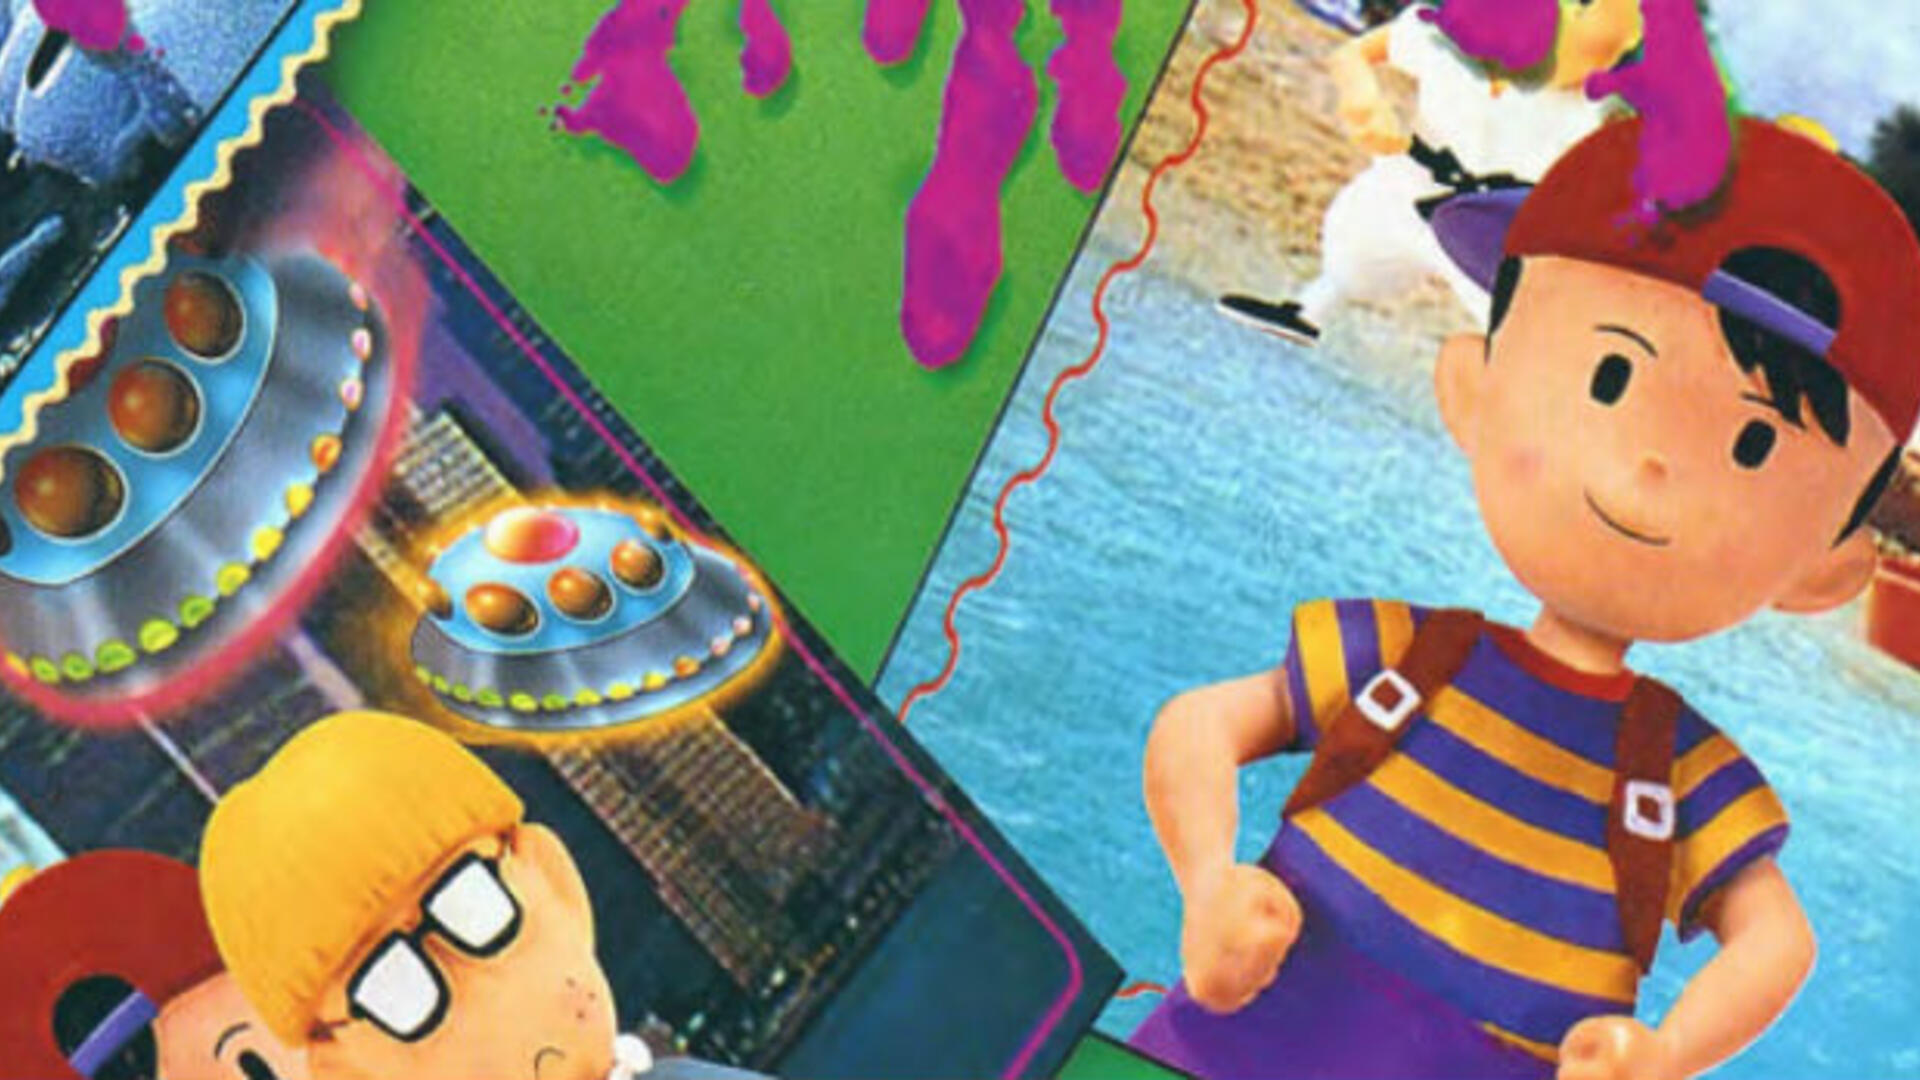 Stop What You're Doing and Look Back on These 10 Beautiful SNES Instruction Booklets